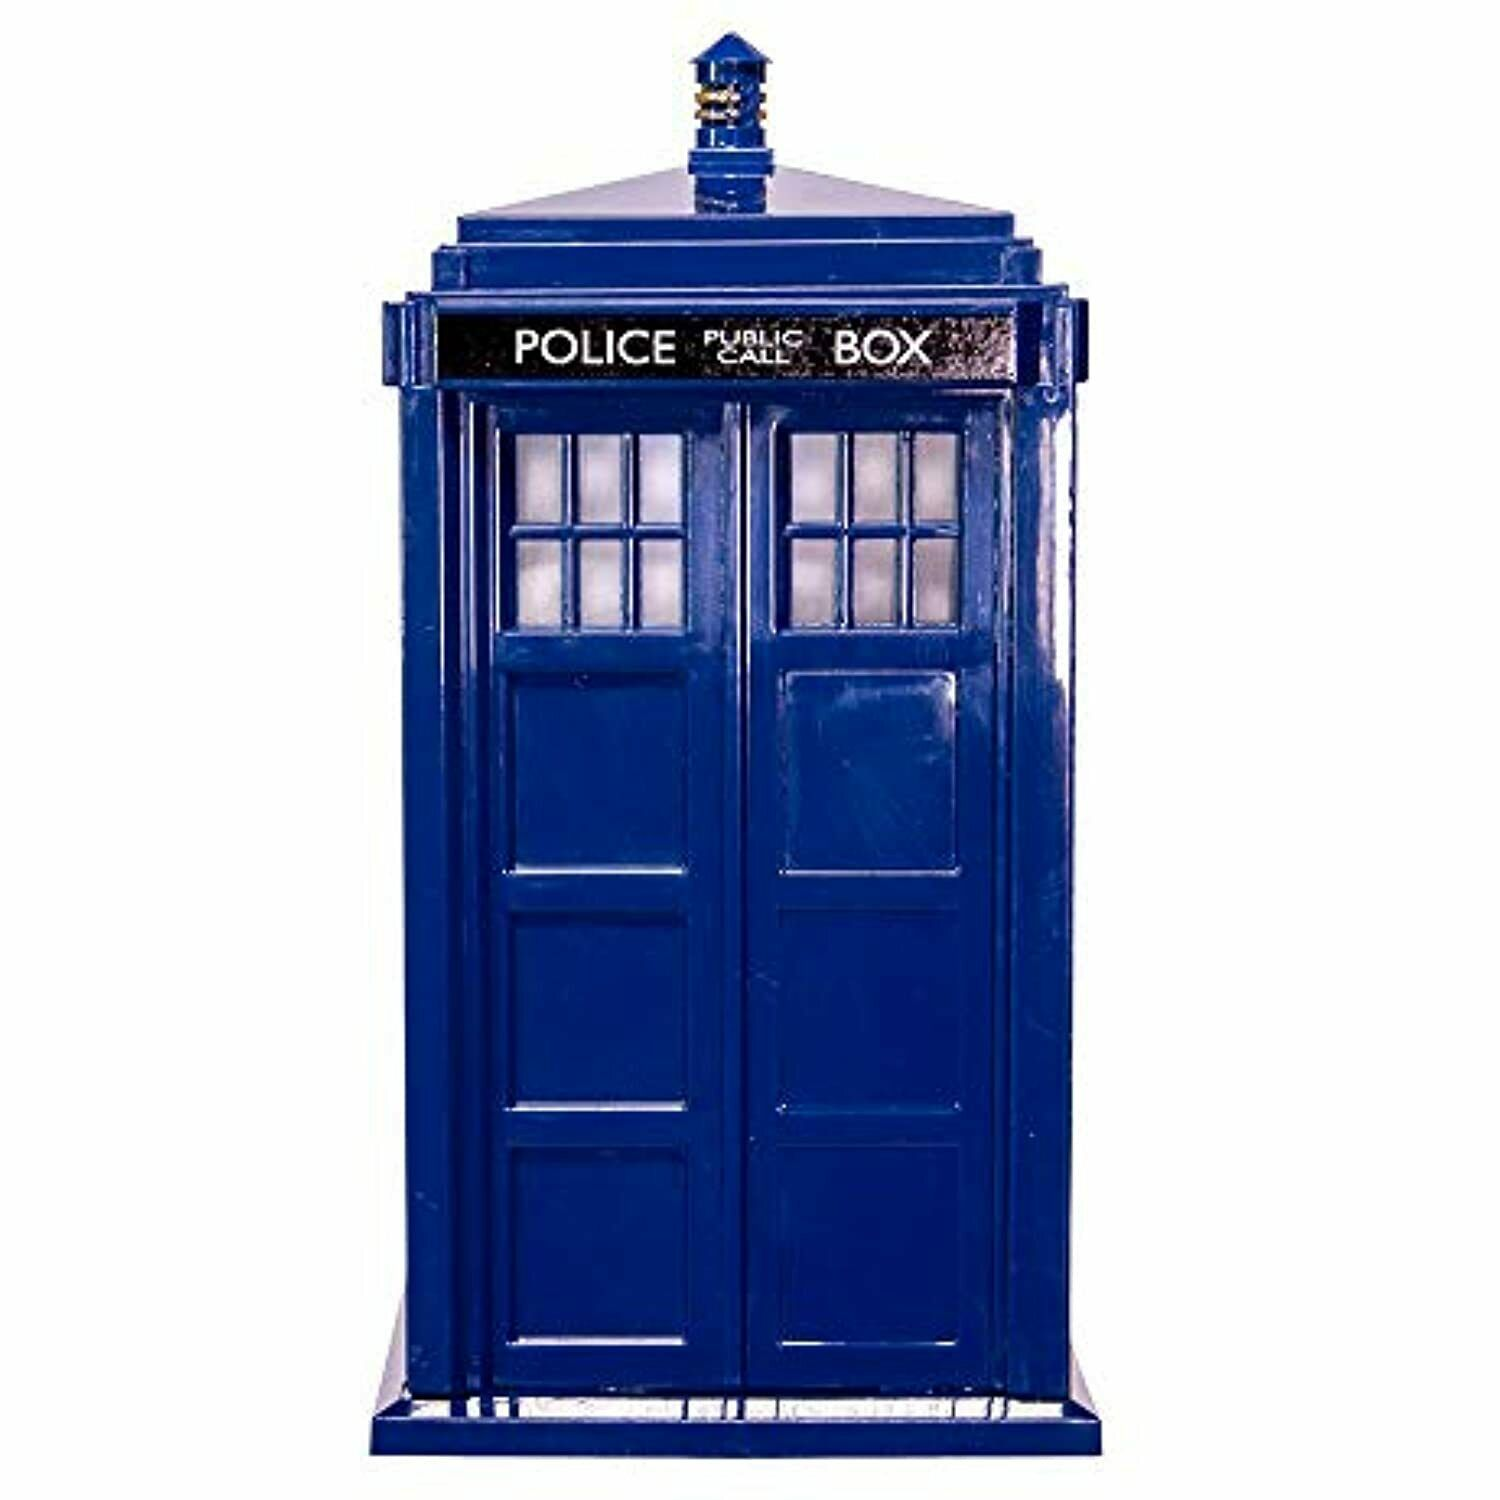 Dr Who Tardis Tree Topper Battery Operated Christmas Decor Bbc Dw9161 For Sale Online Ebay